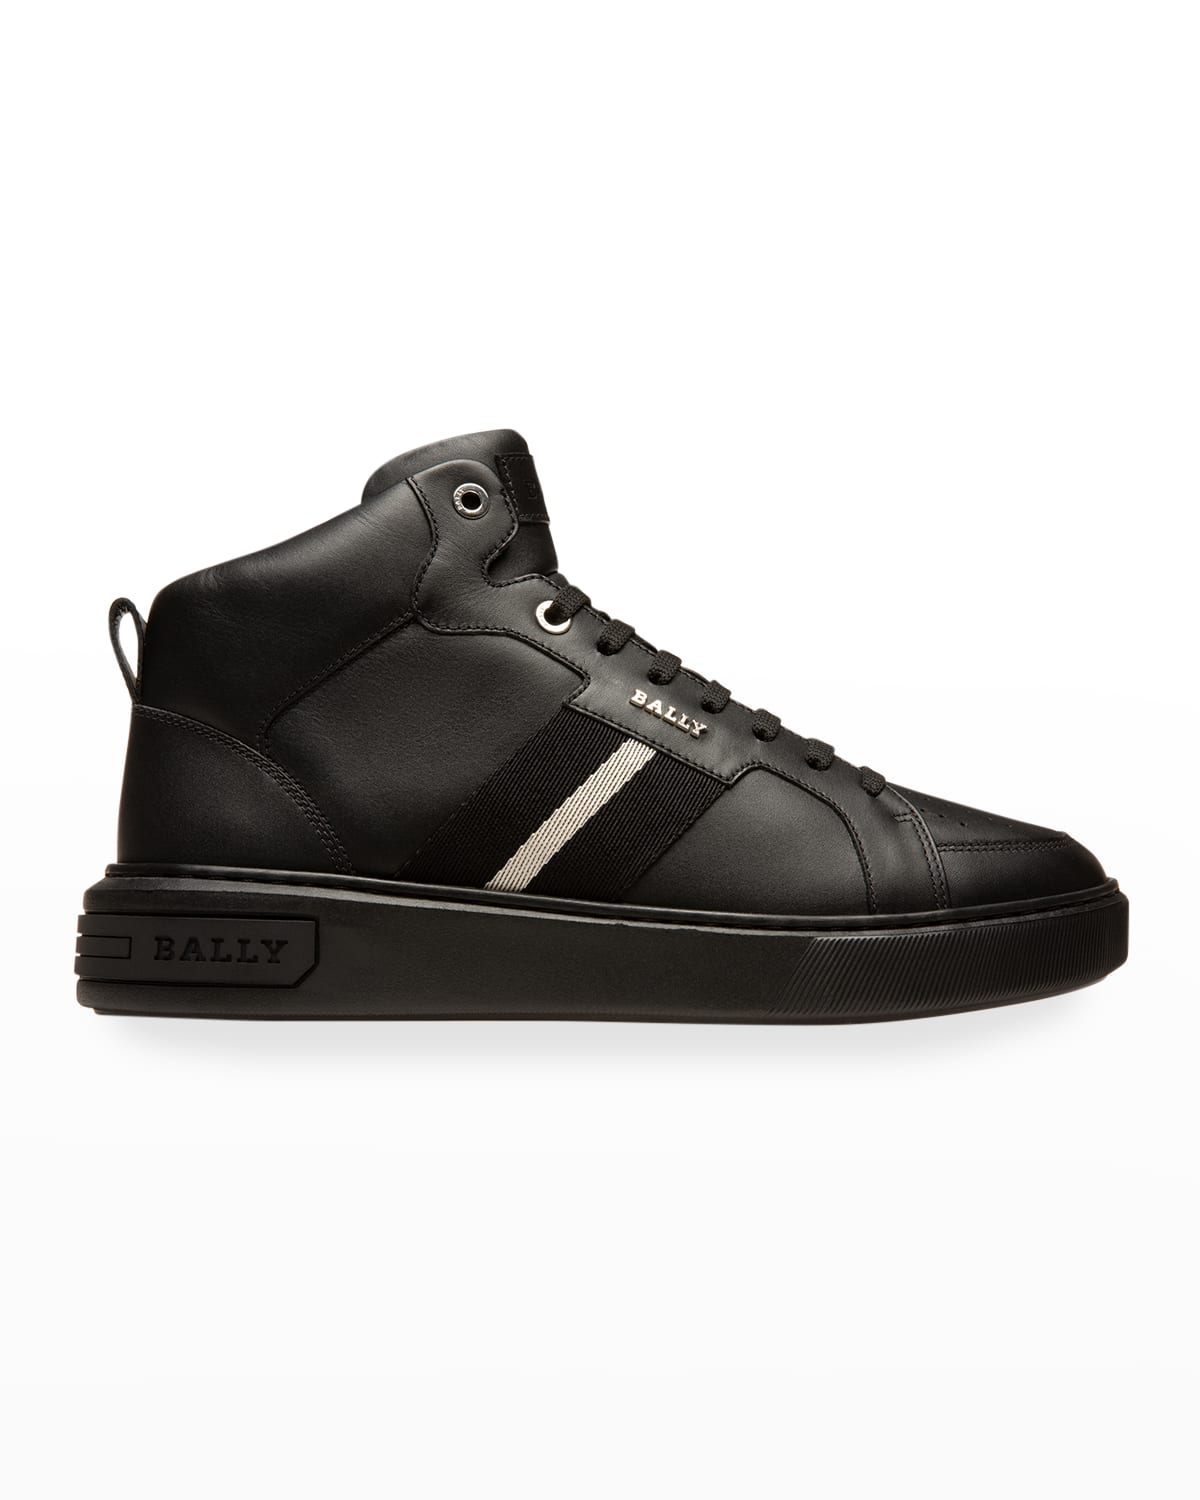 Men's Myles Trainspotting Leather High-Top Sneakers